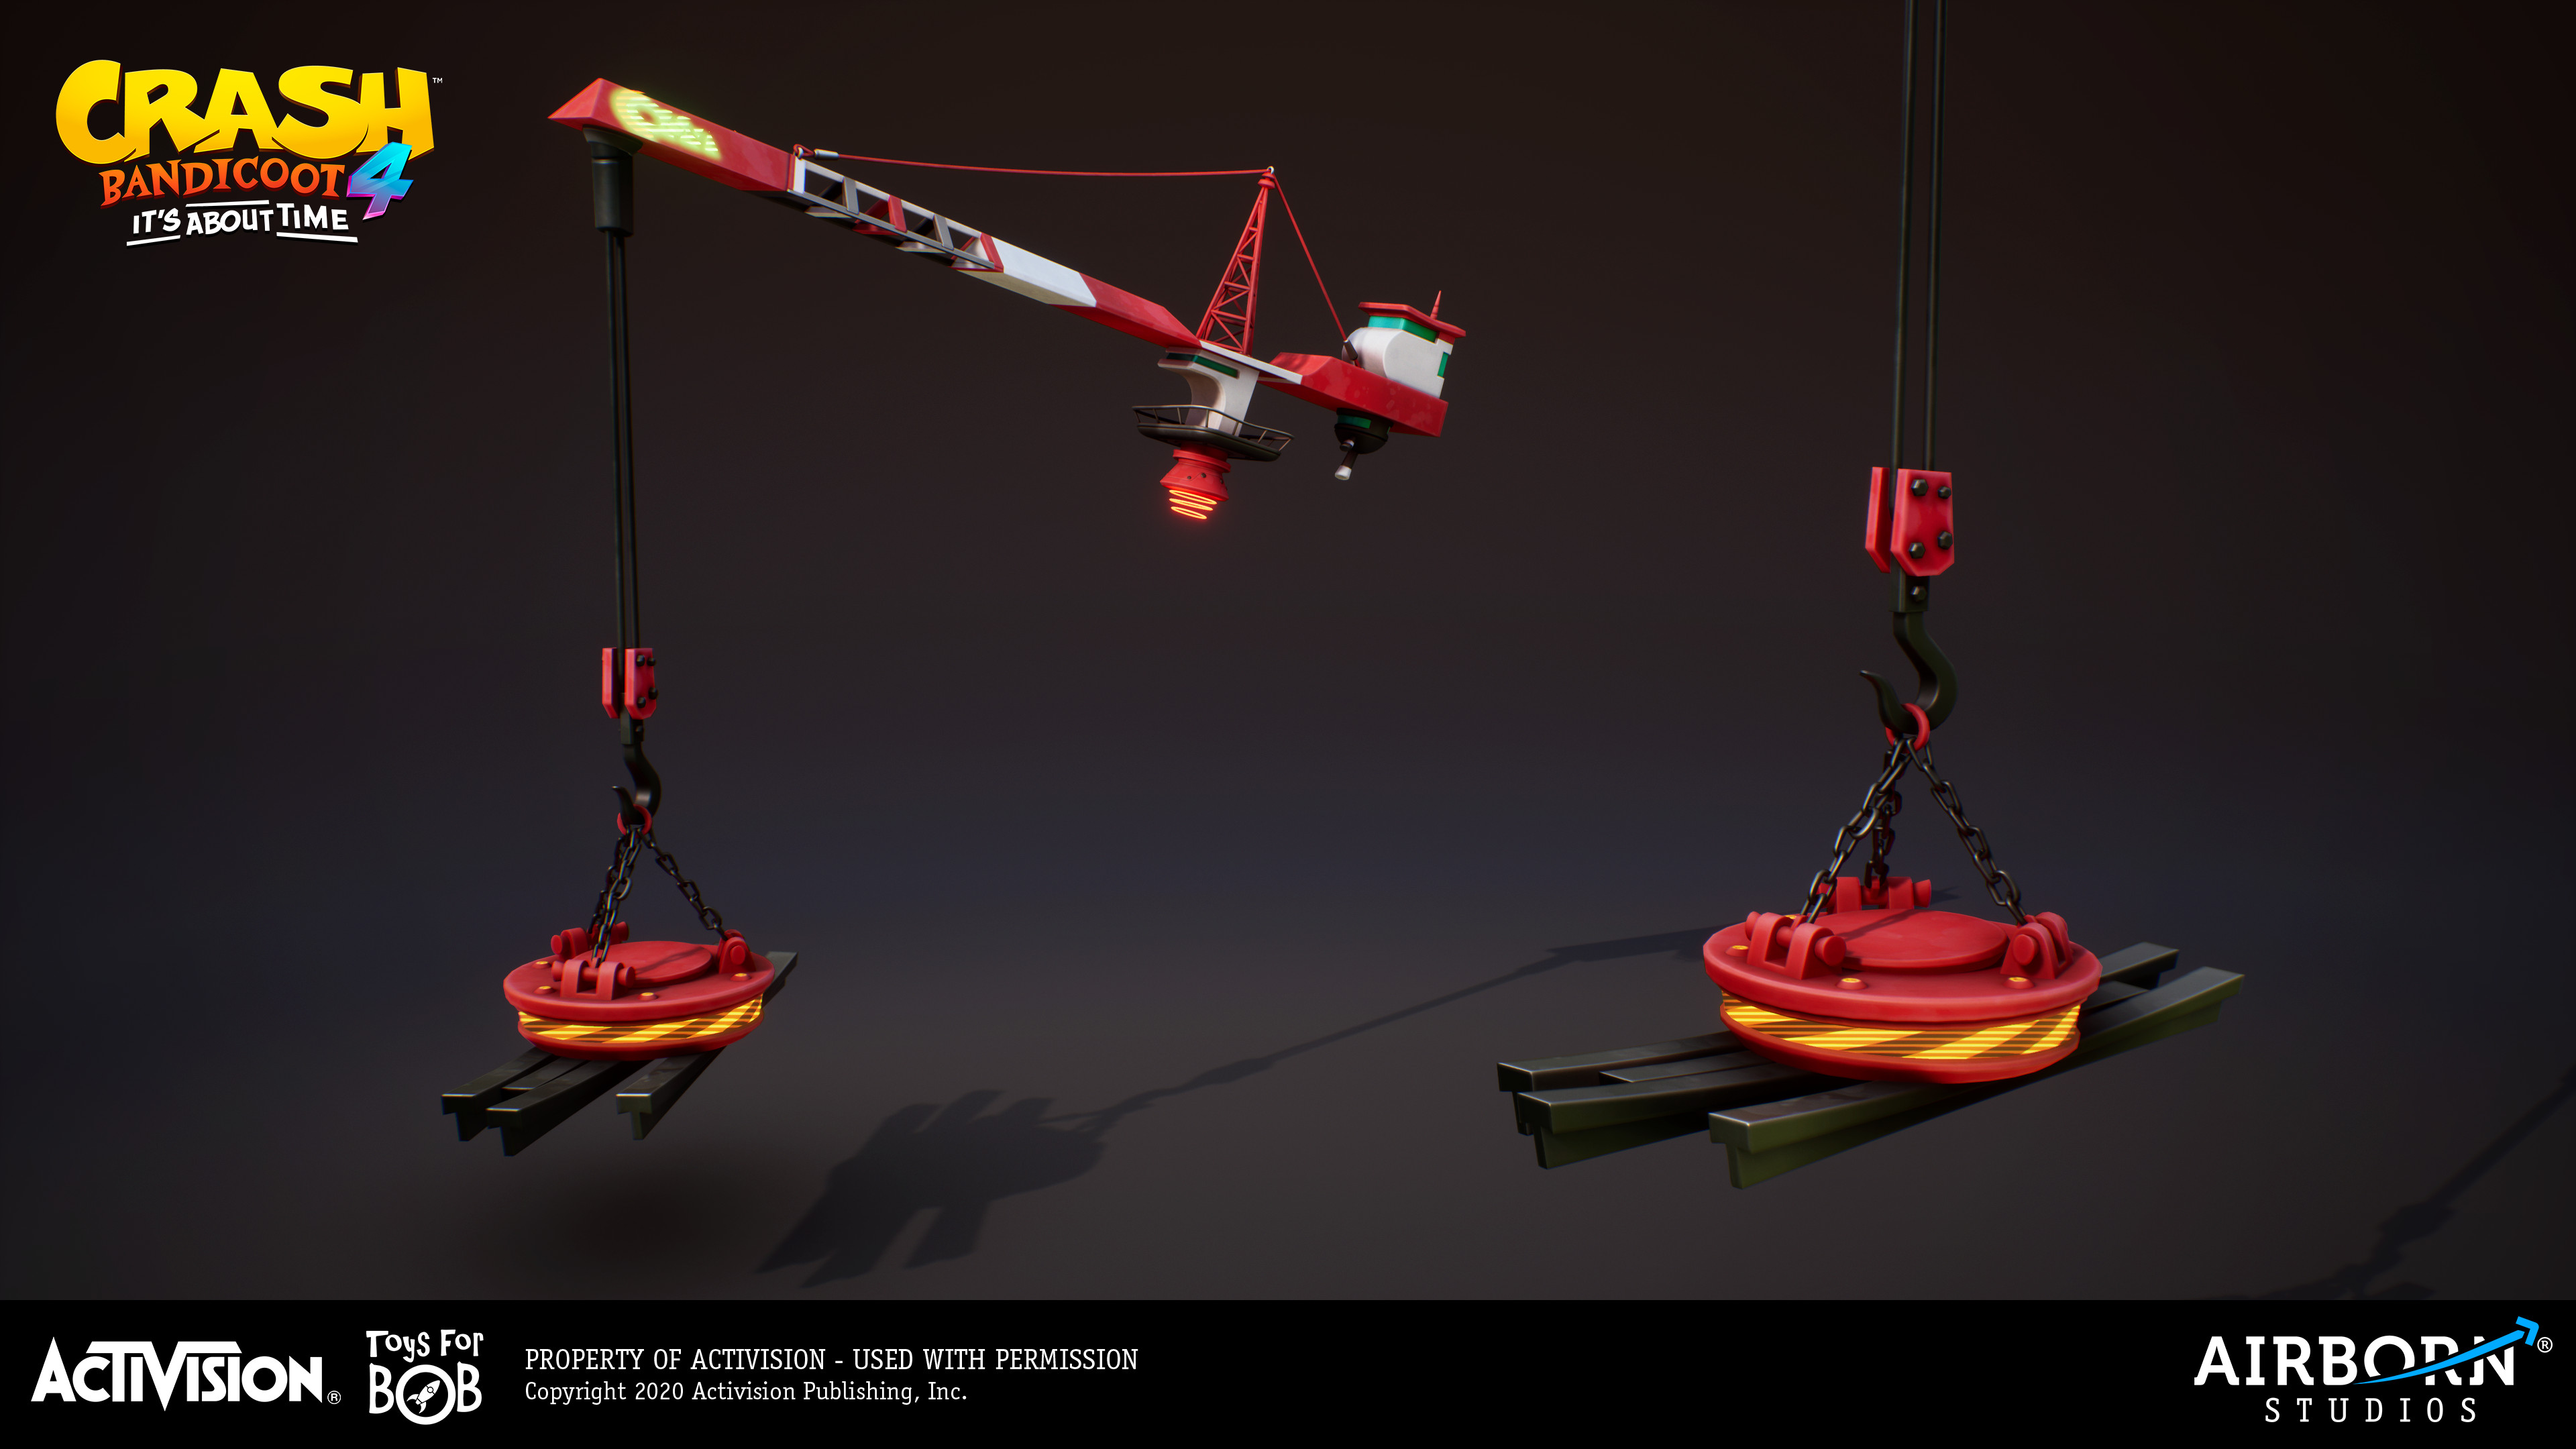 Crane by Frederic Fouque